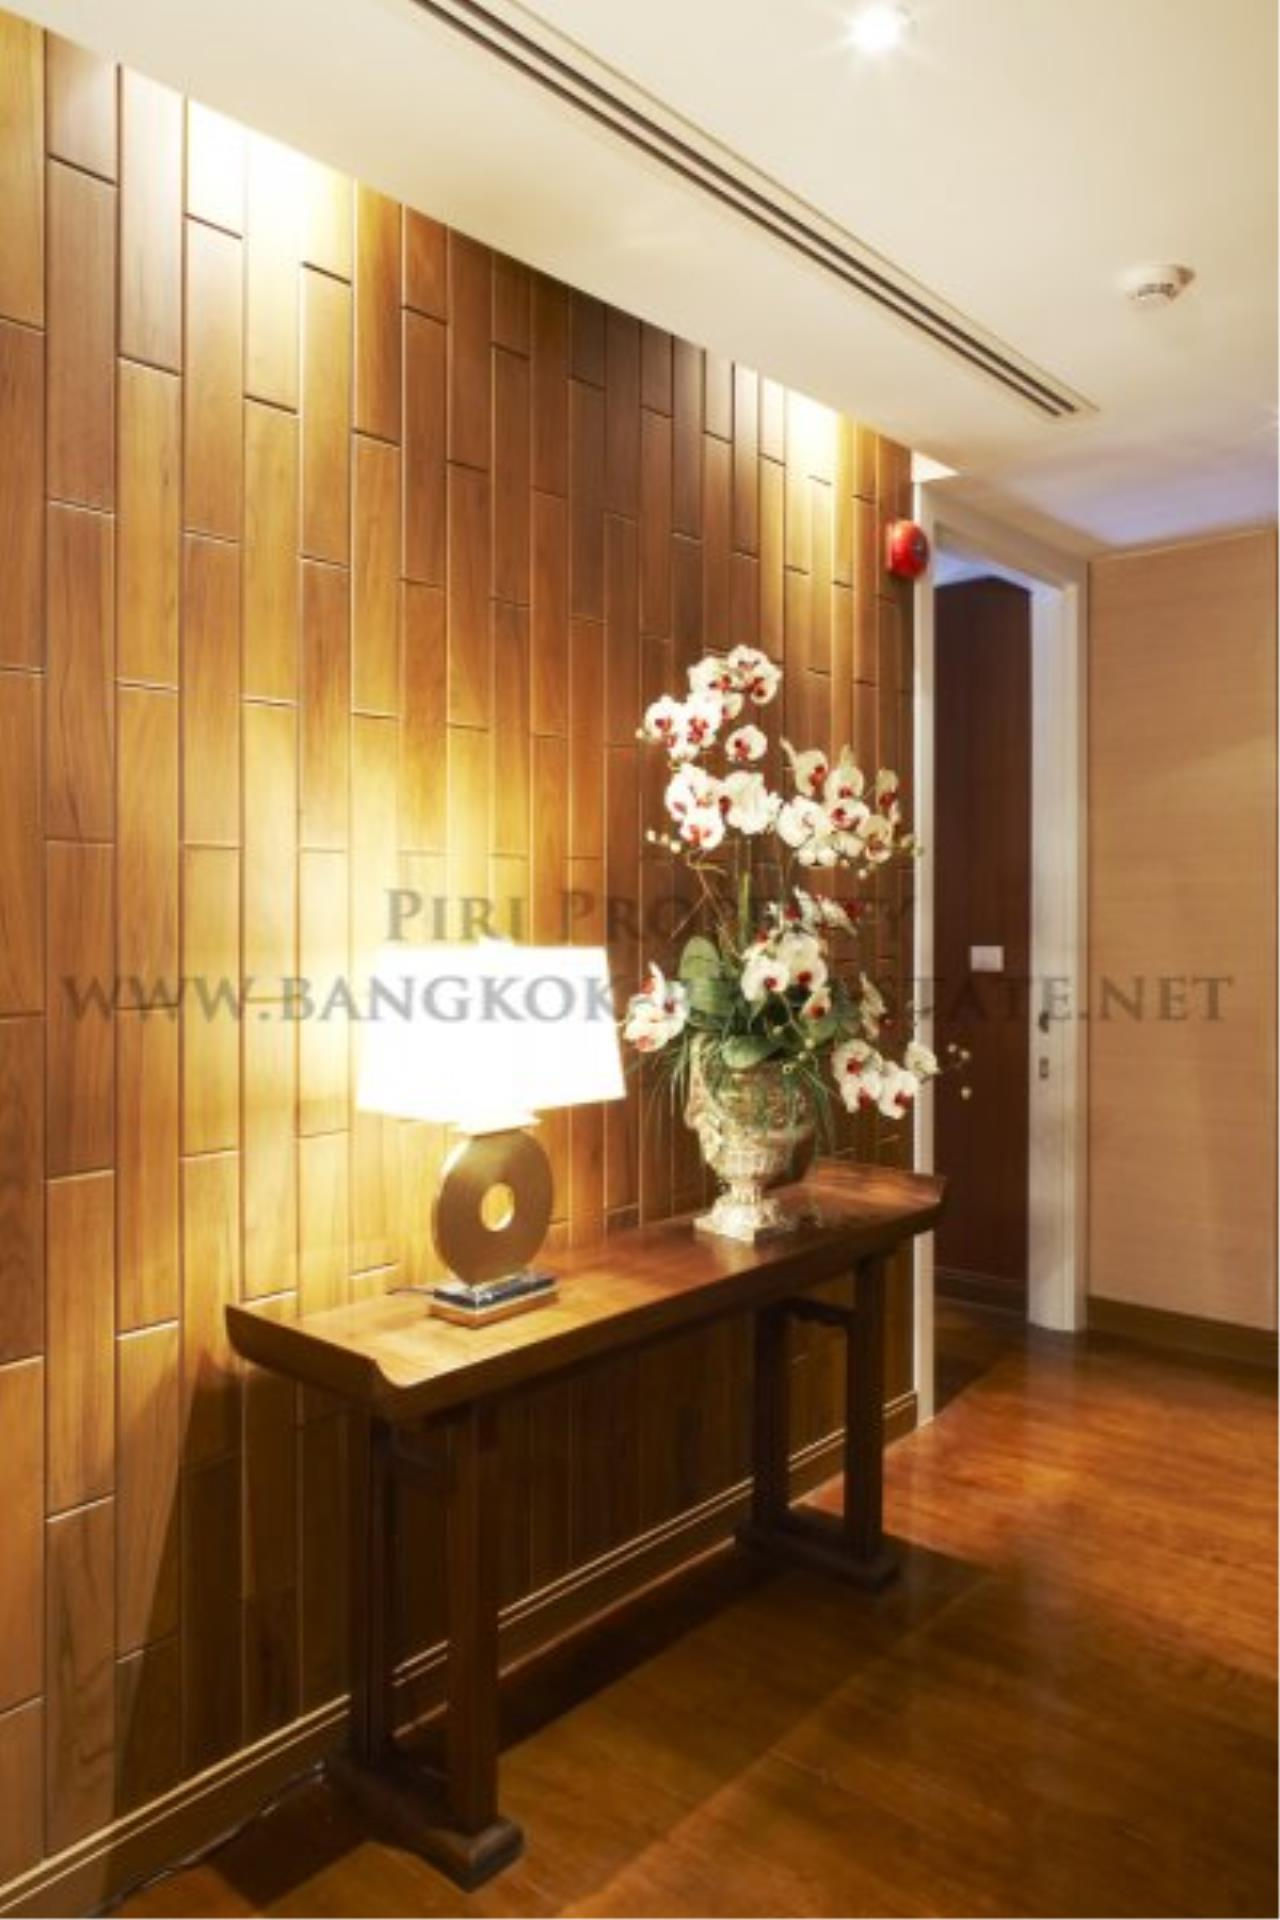 Piri Property Agency's Athenee Residence - 2 Bedroom Condo for Rent 4